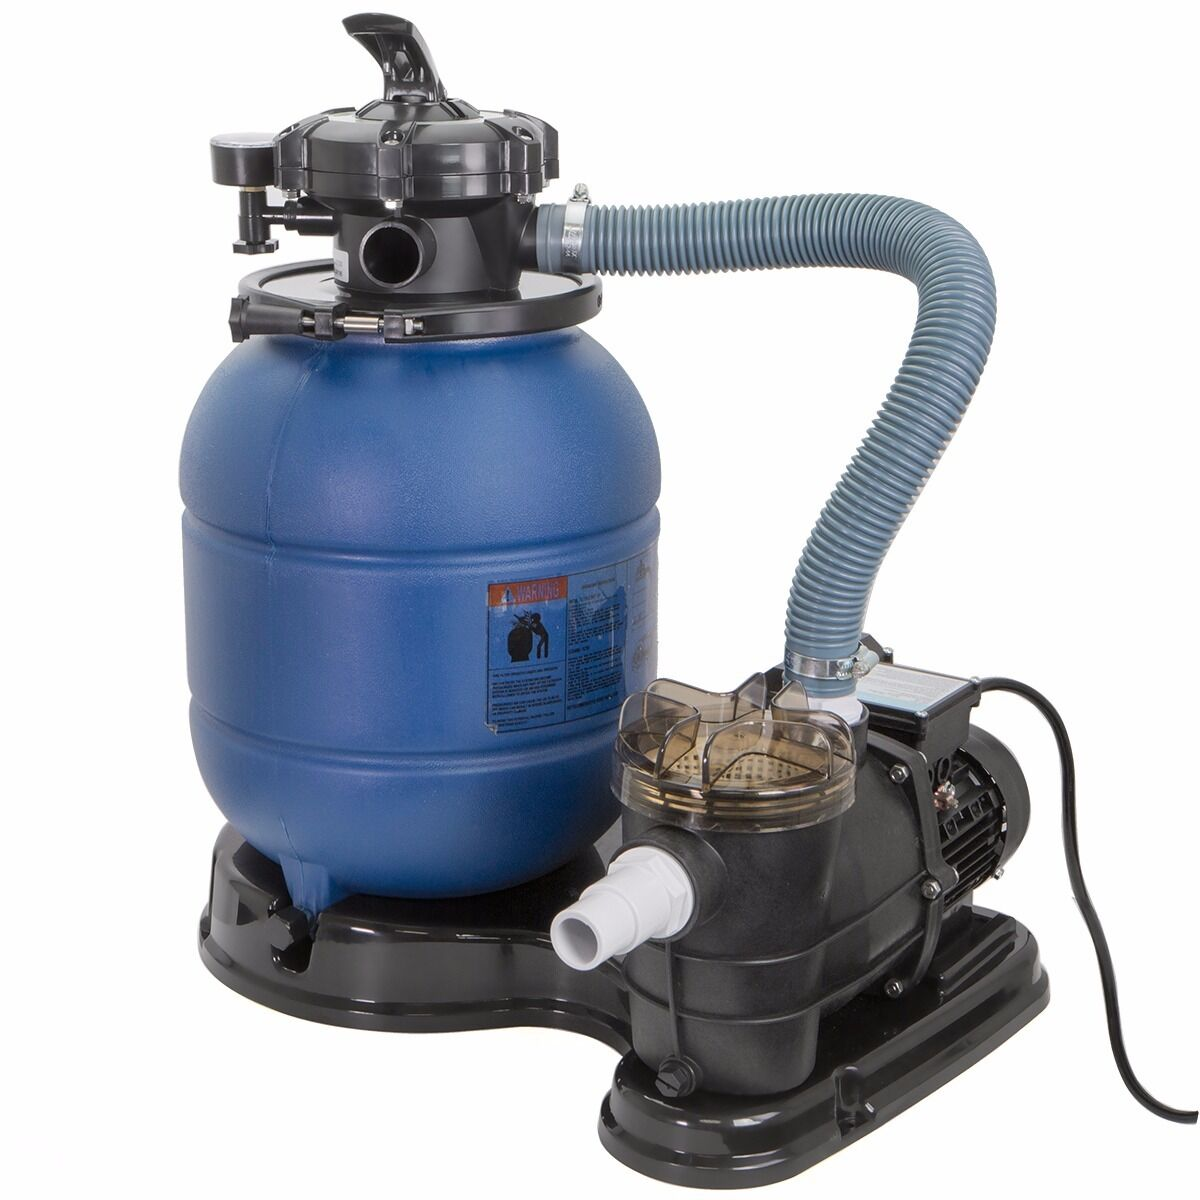 2400gph 13 sand filter 3 4 hp above ground swimming pool pump intex compatible ebay - Sandfilterpumpe fur pool ...